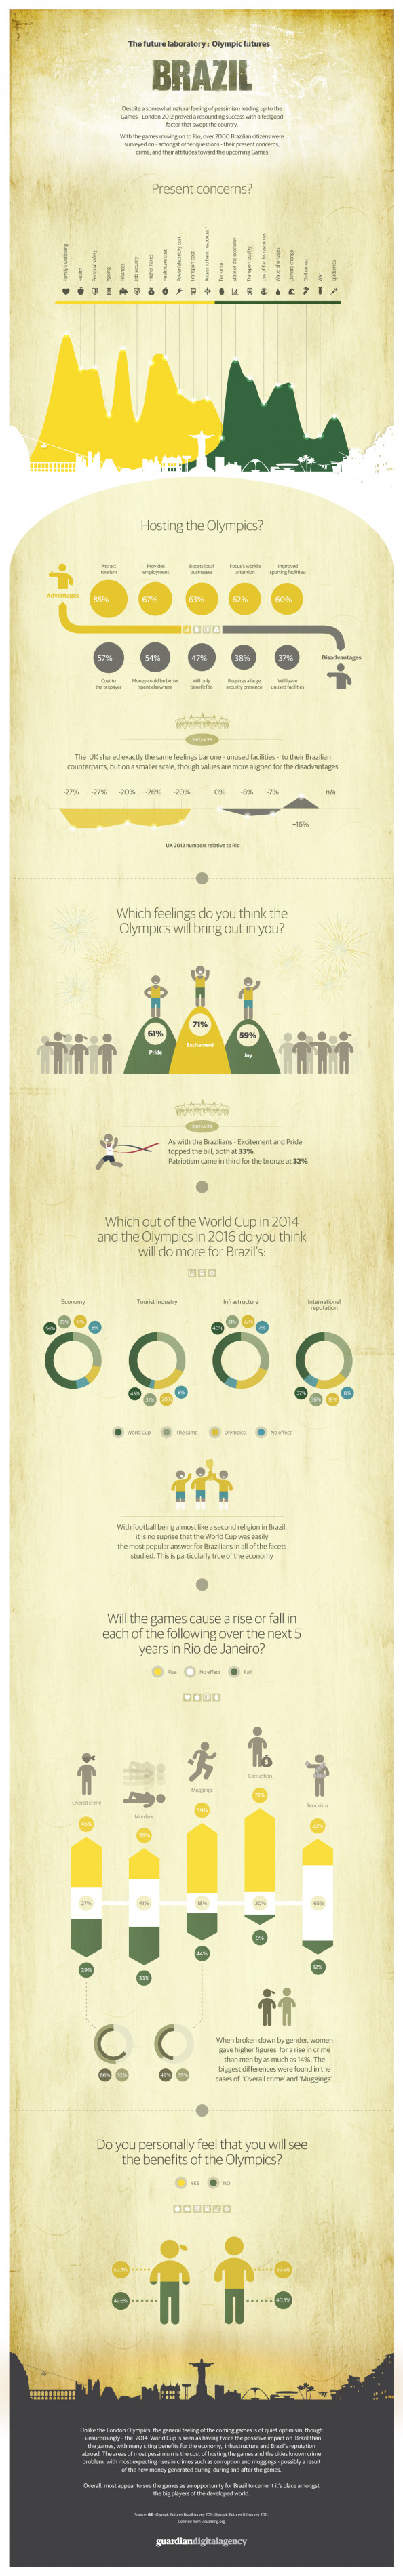 Olympic Futures: Brazil Infographic